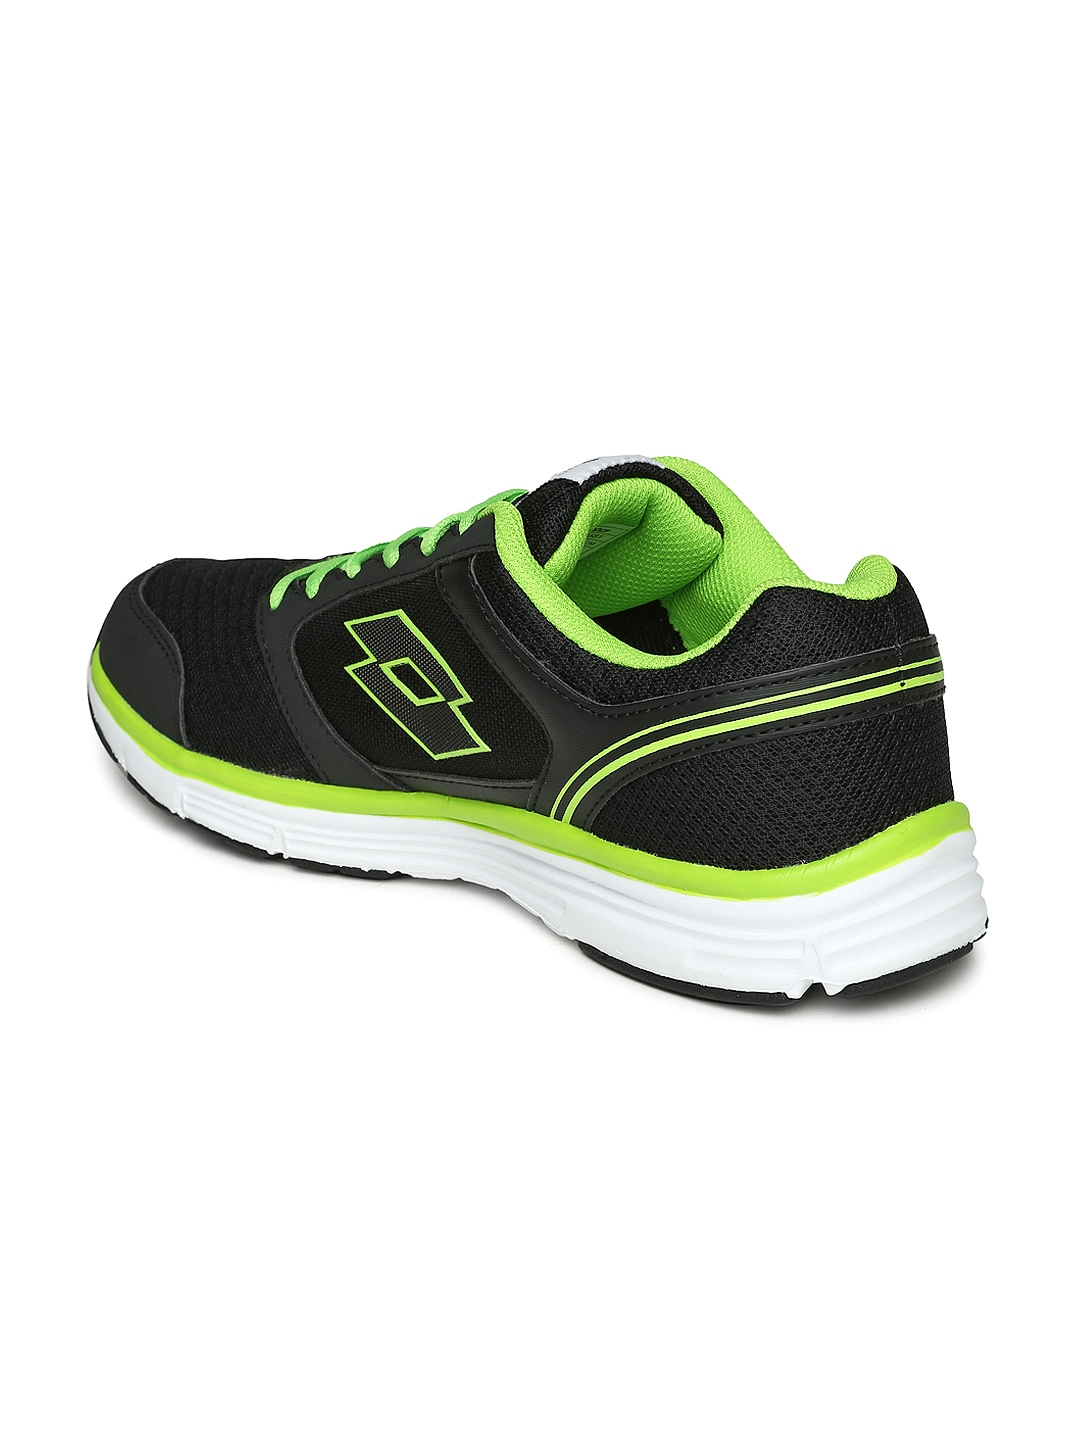 Lotto Truant Ii Running Shoes Price